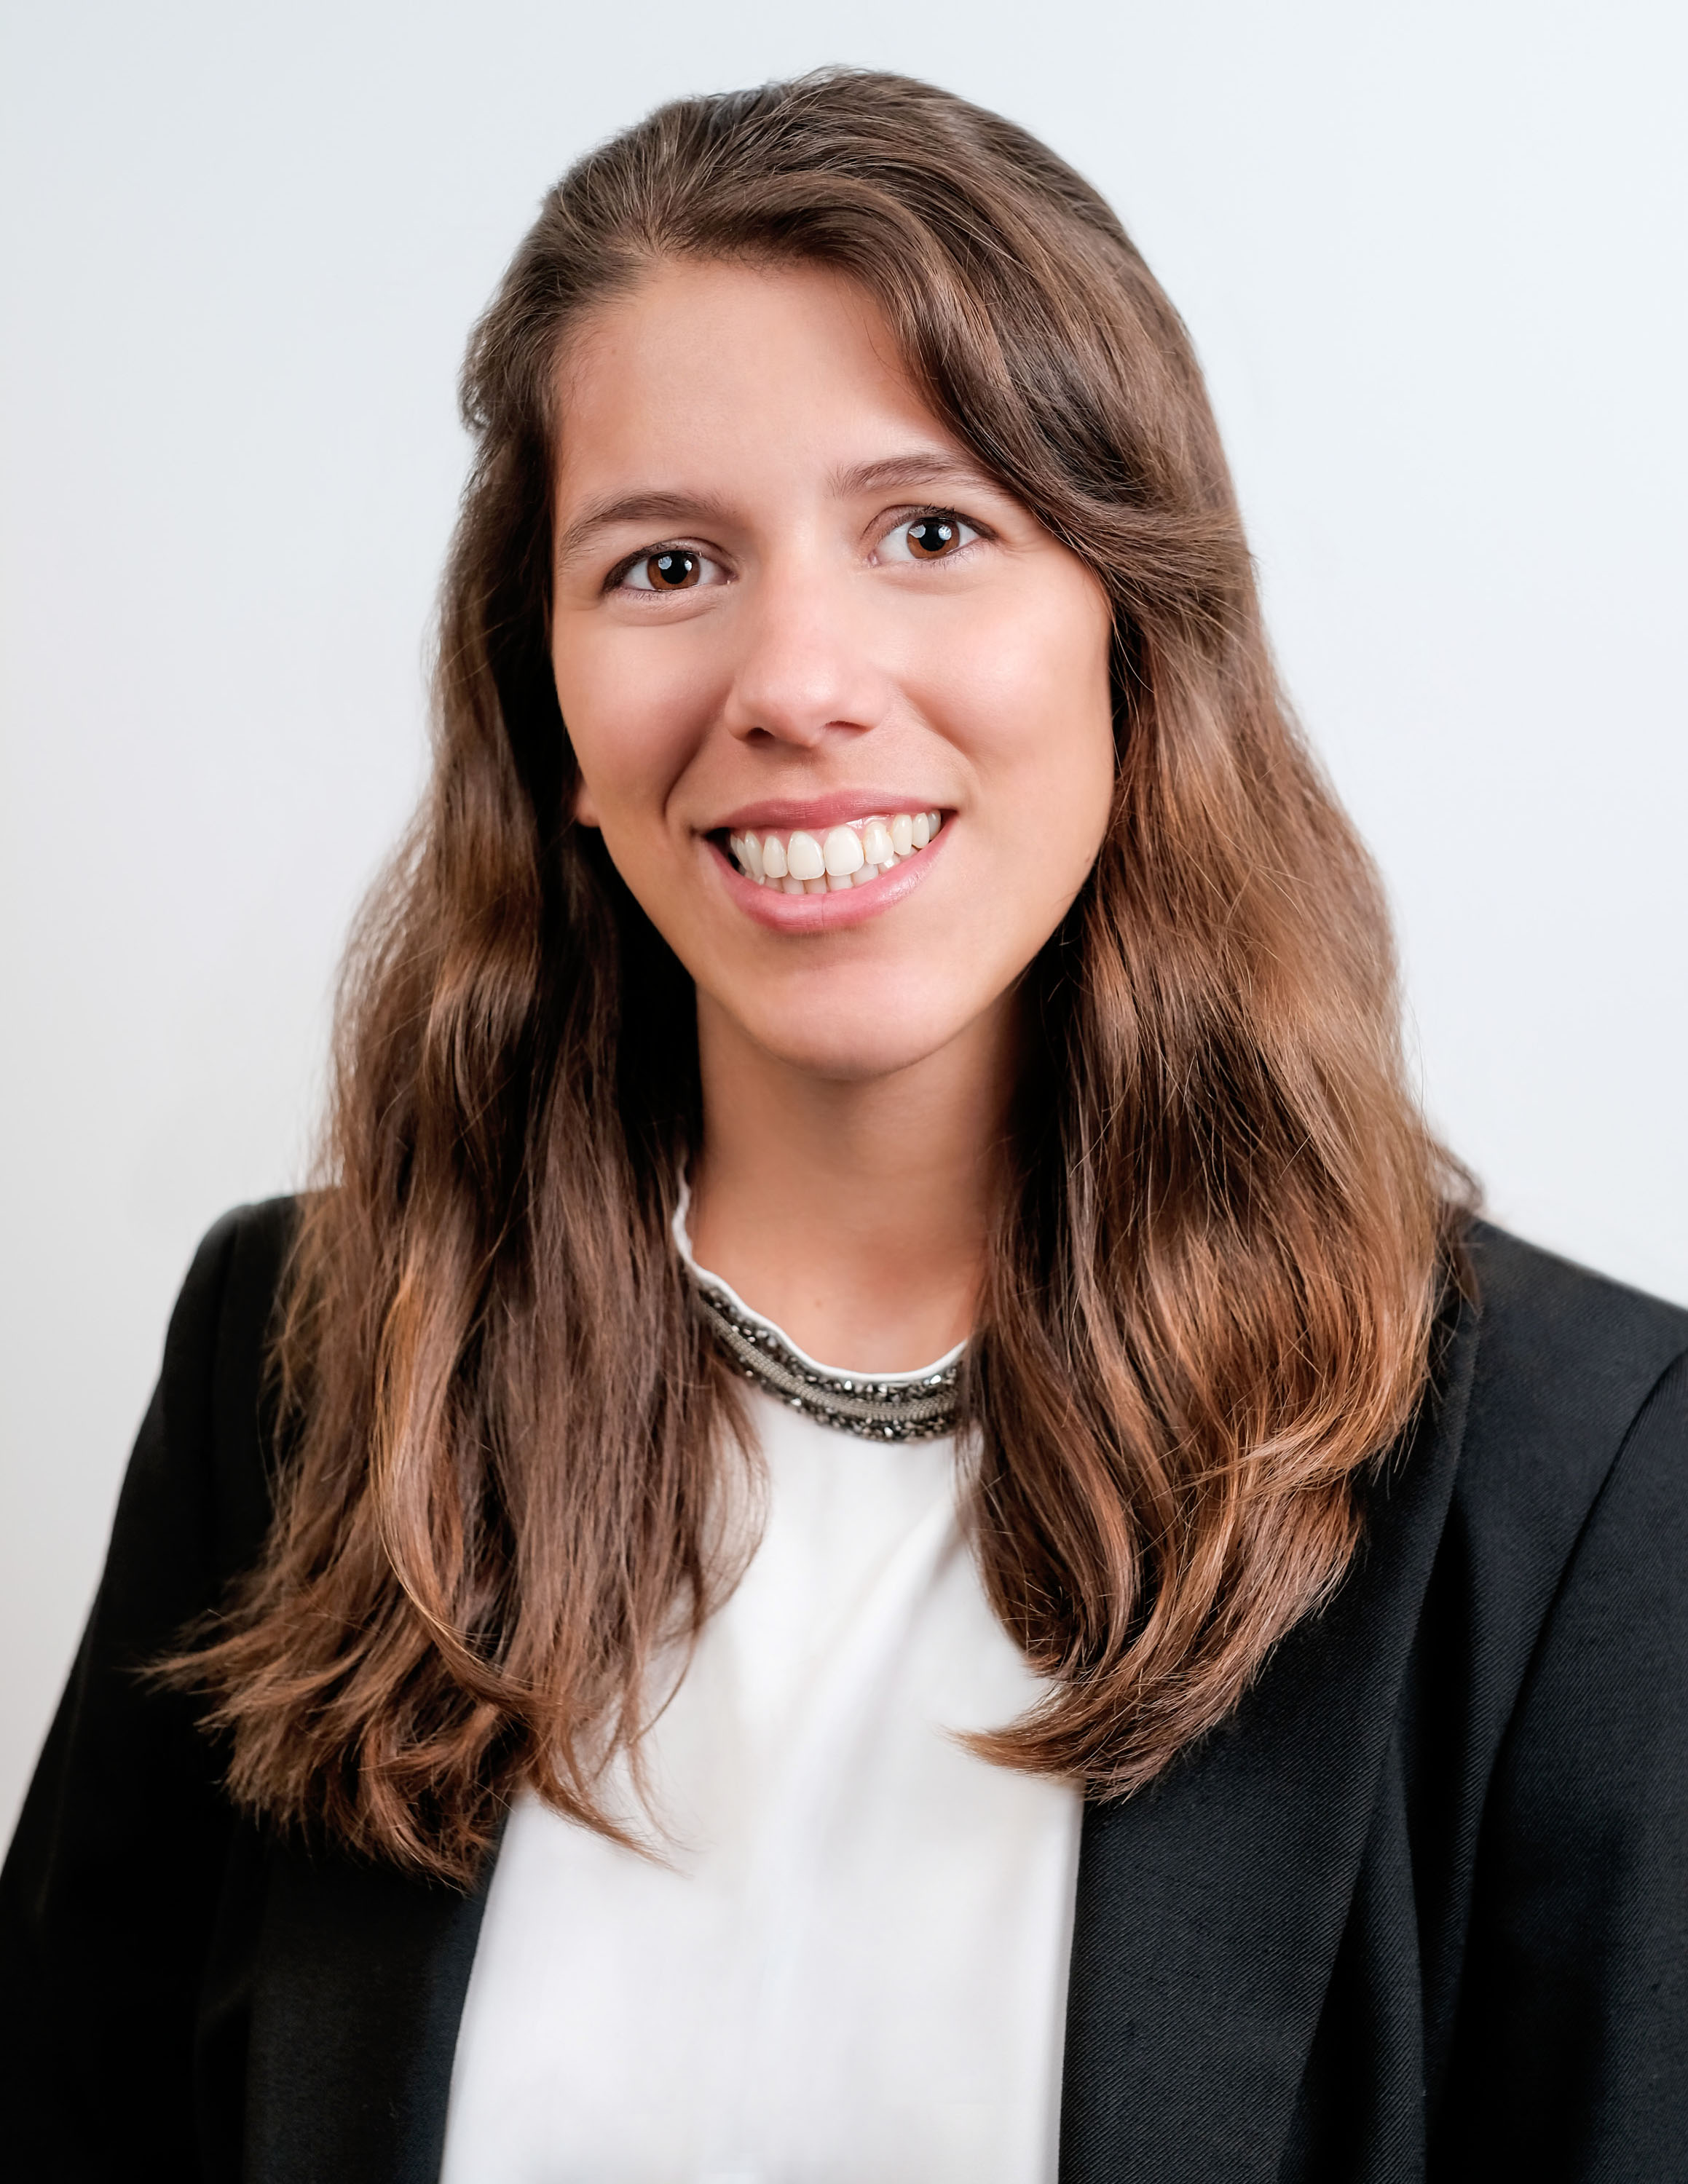 Marta C. Lopes : Joining September 2020